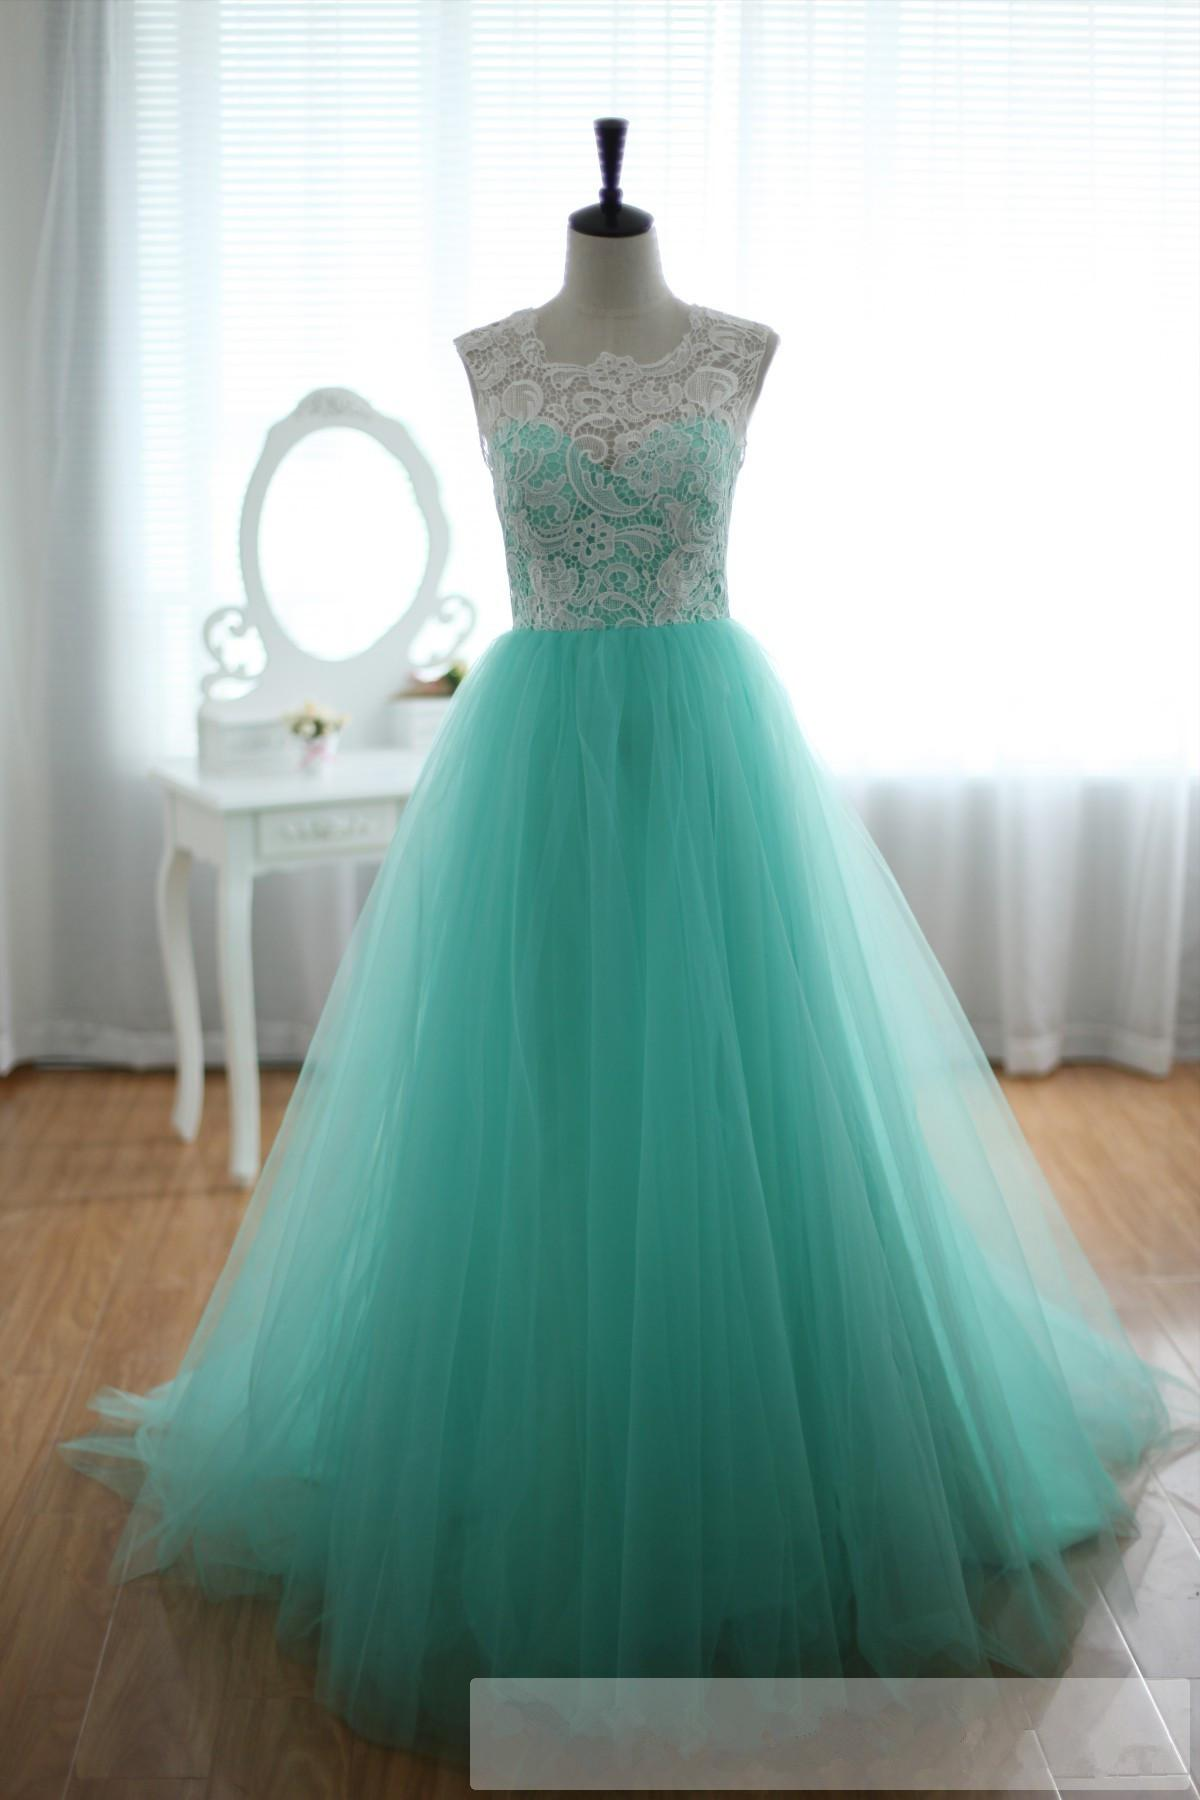 Contemporary Blue Vintage Prom Dress Pattern - Wedding Dress Ideas ...